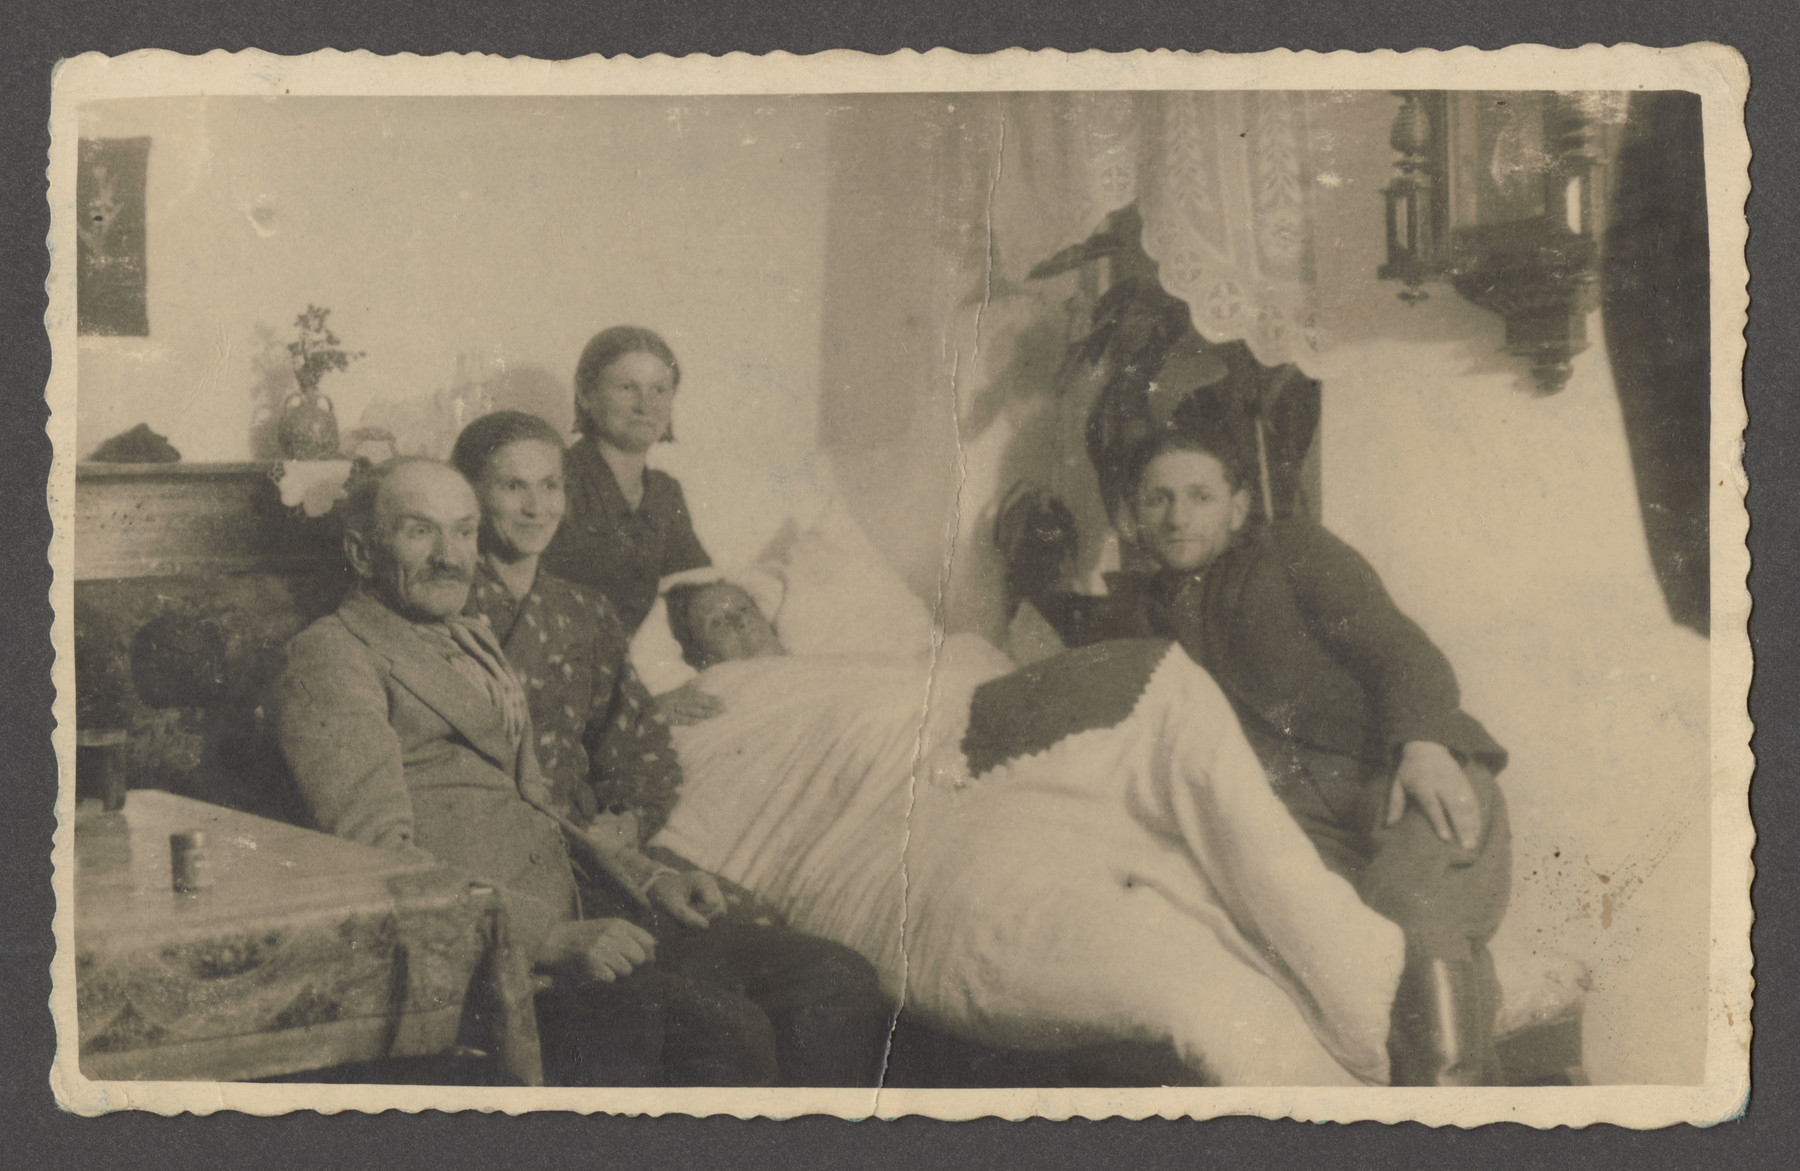 The Scwarczman family gathers around Leah Scwarczman shortly before her death.  Pictured from left to right are Joseph, Sophie, Sonia and Bennick Goldshein (Sophie's husband).